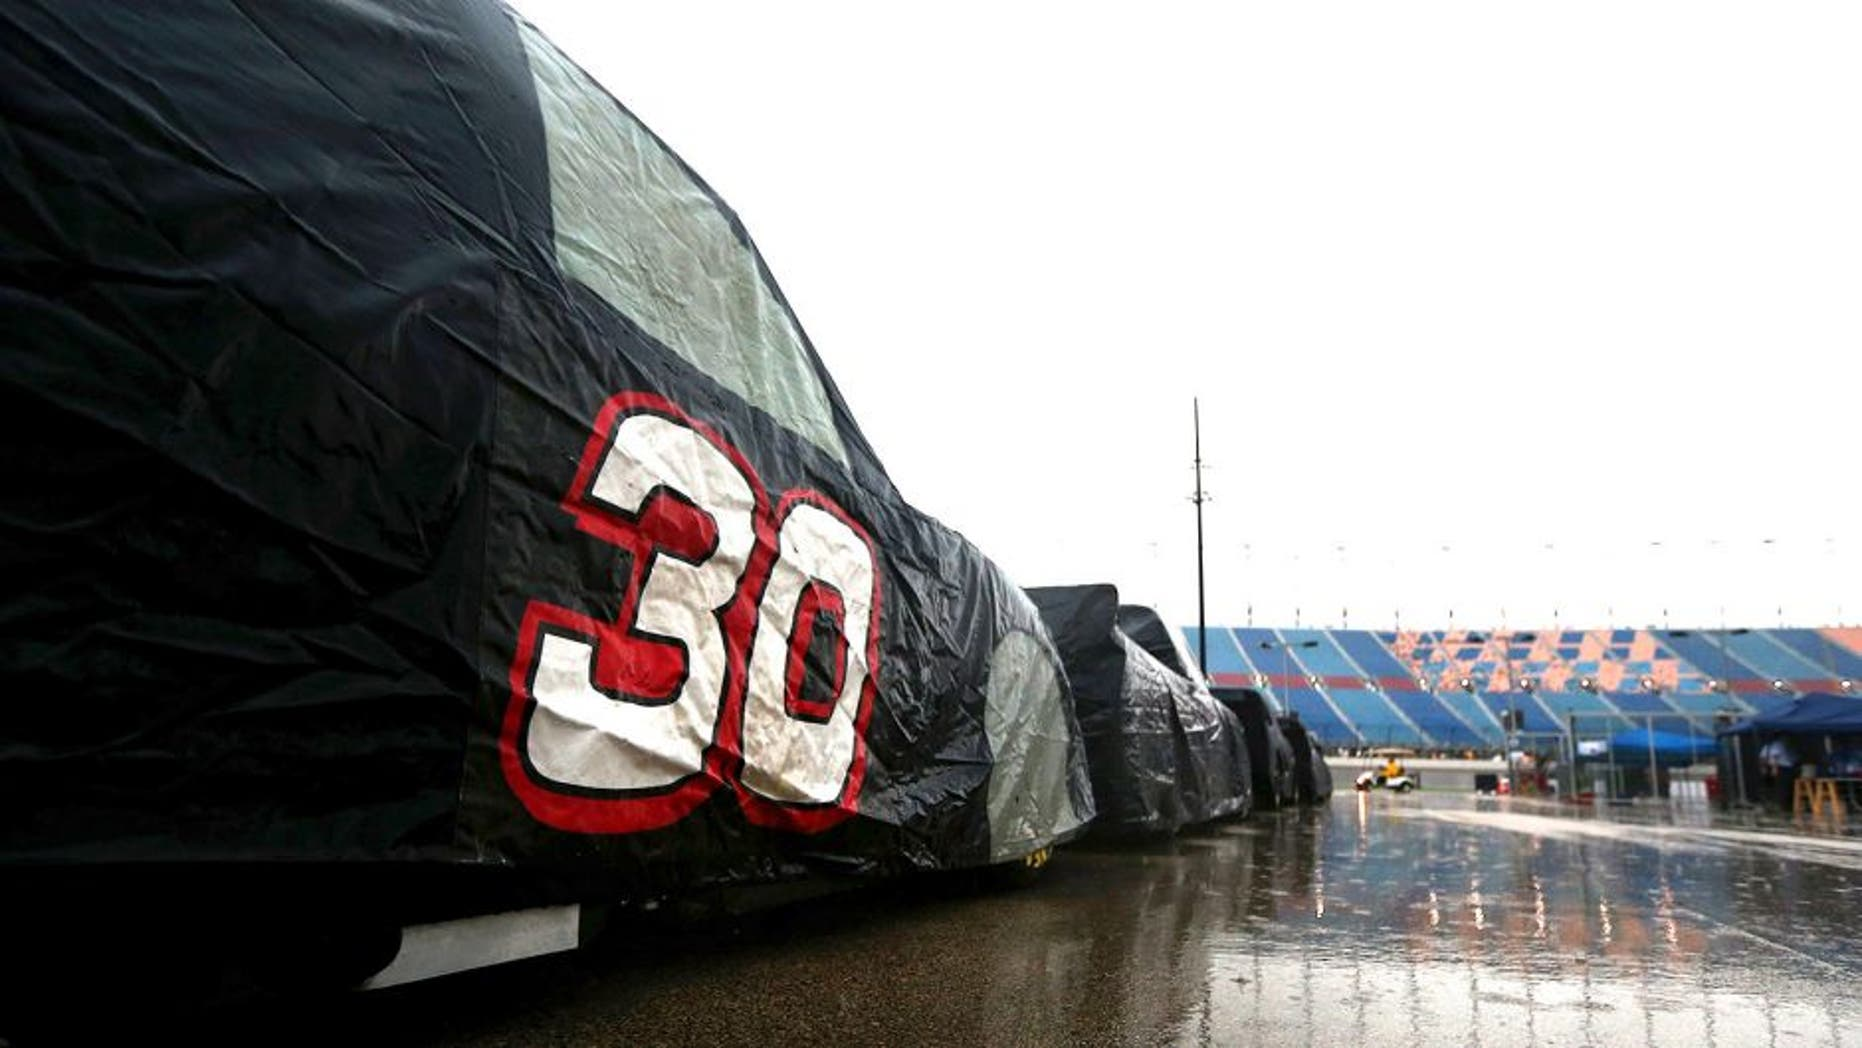 JOLIET, IL - SEPTEMBER 18: A view of pit road during heavy rain during qualifying for the NASCAR Camping World Truck Series American Ethanol E15 225 at Chicagoland Speedway on September 18, 2015 in Joliet, Illinois. (Photo by Sarah Crabill/NASCAR via Getty Images)